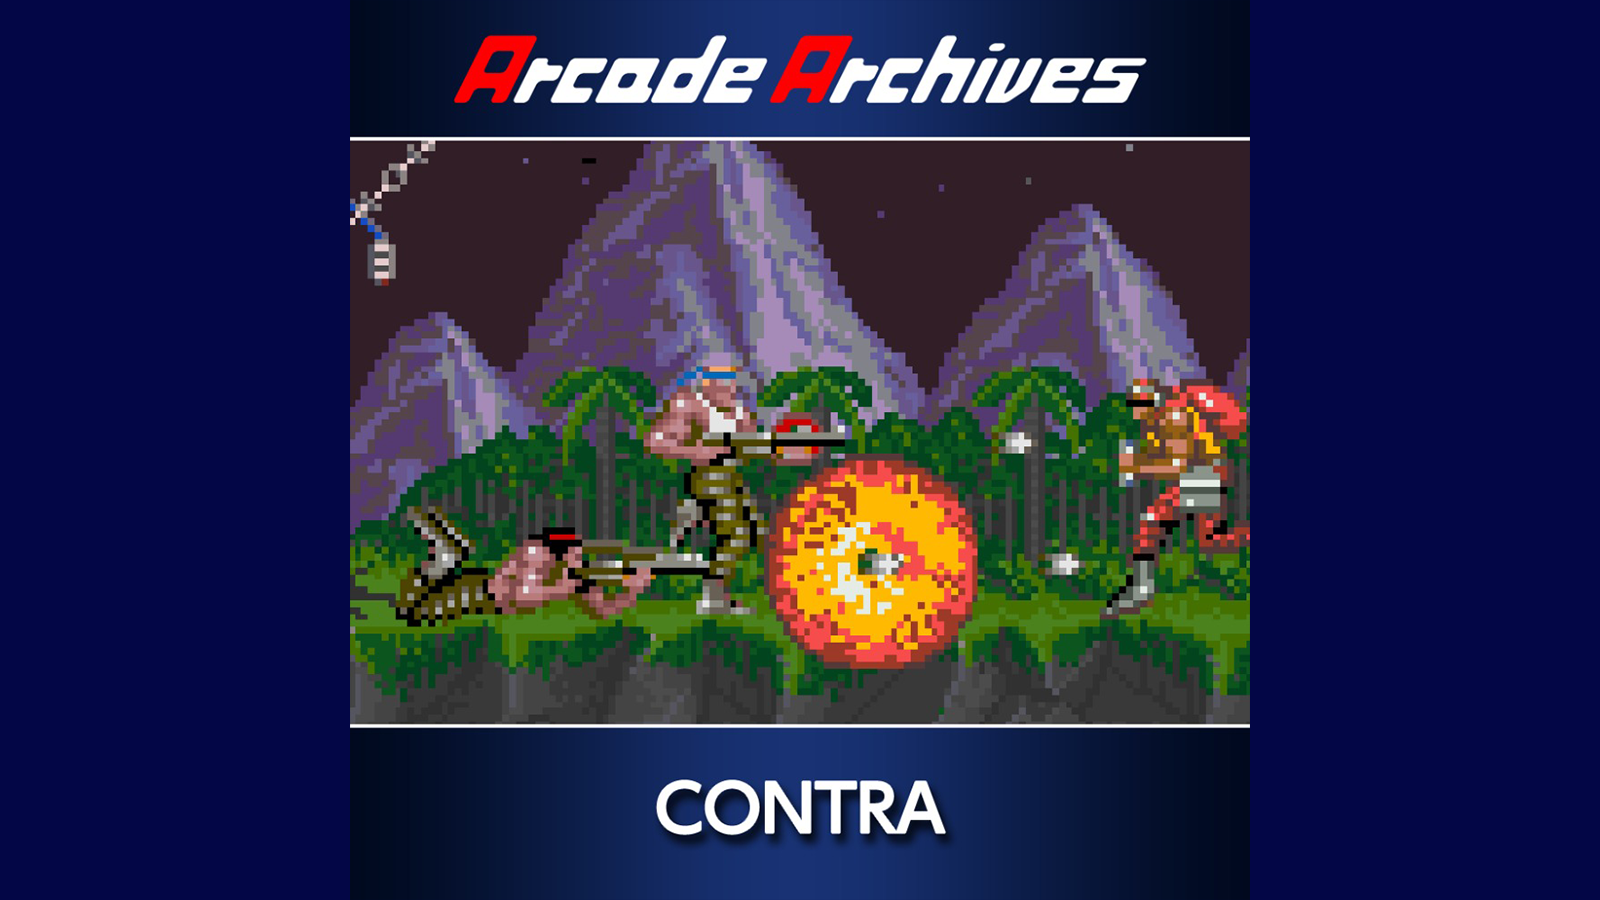 Arcade Archives CONTRA Game | PS4 - PlayStation